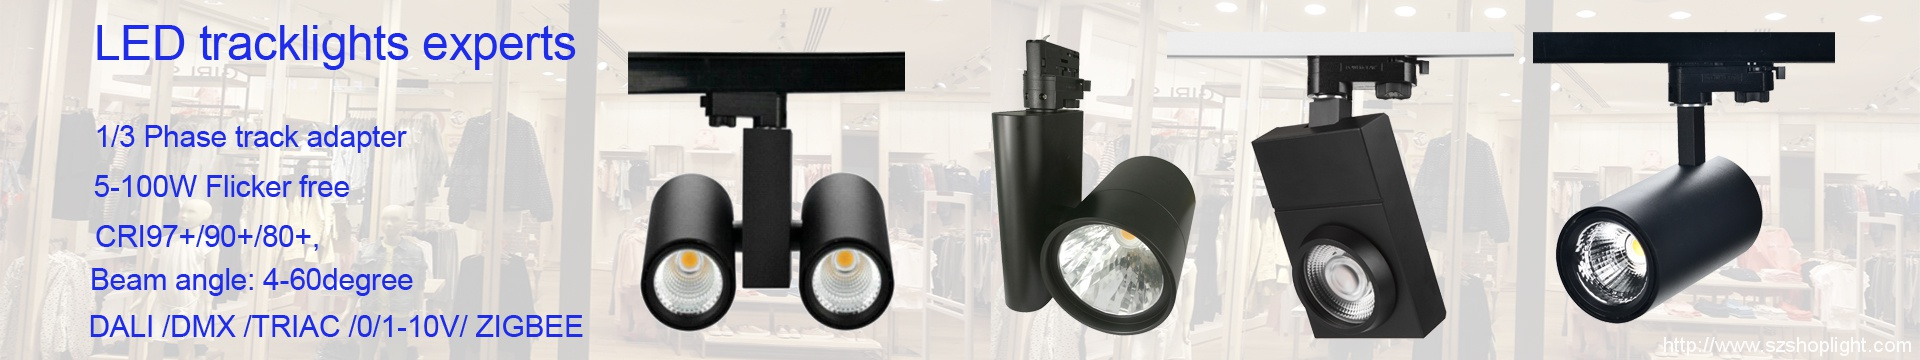 LED tracklight expert 2018